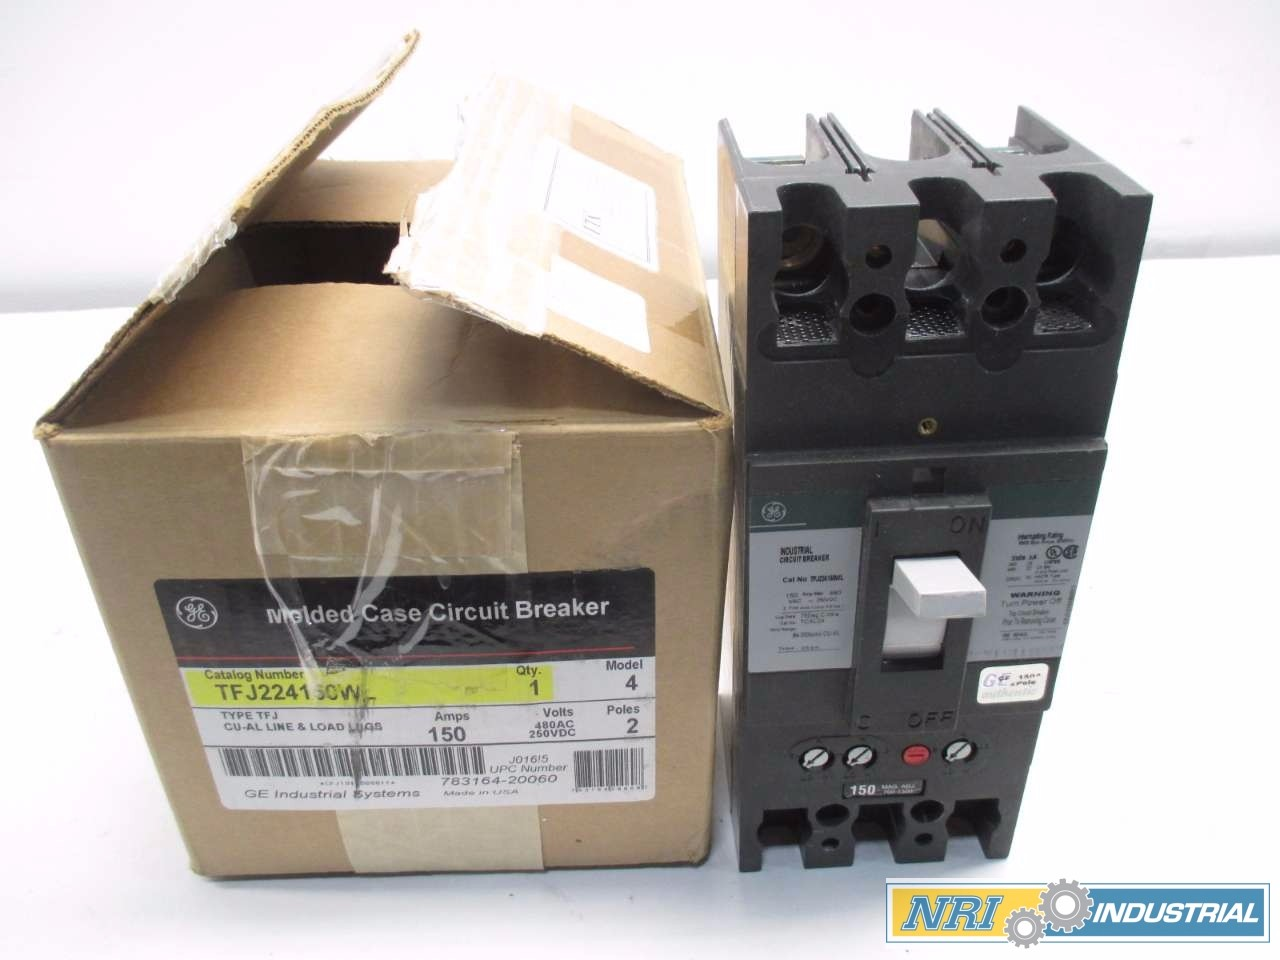 NEW GENERAL ELECTRIC 150 A CIRCUIT BREAKER